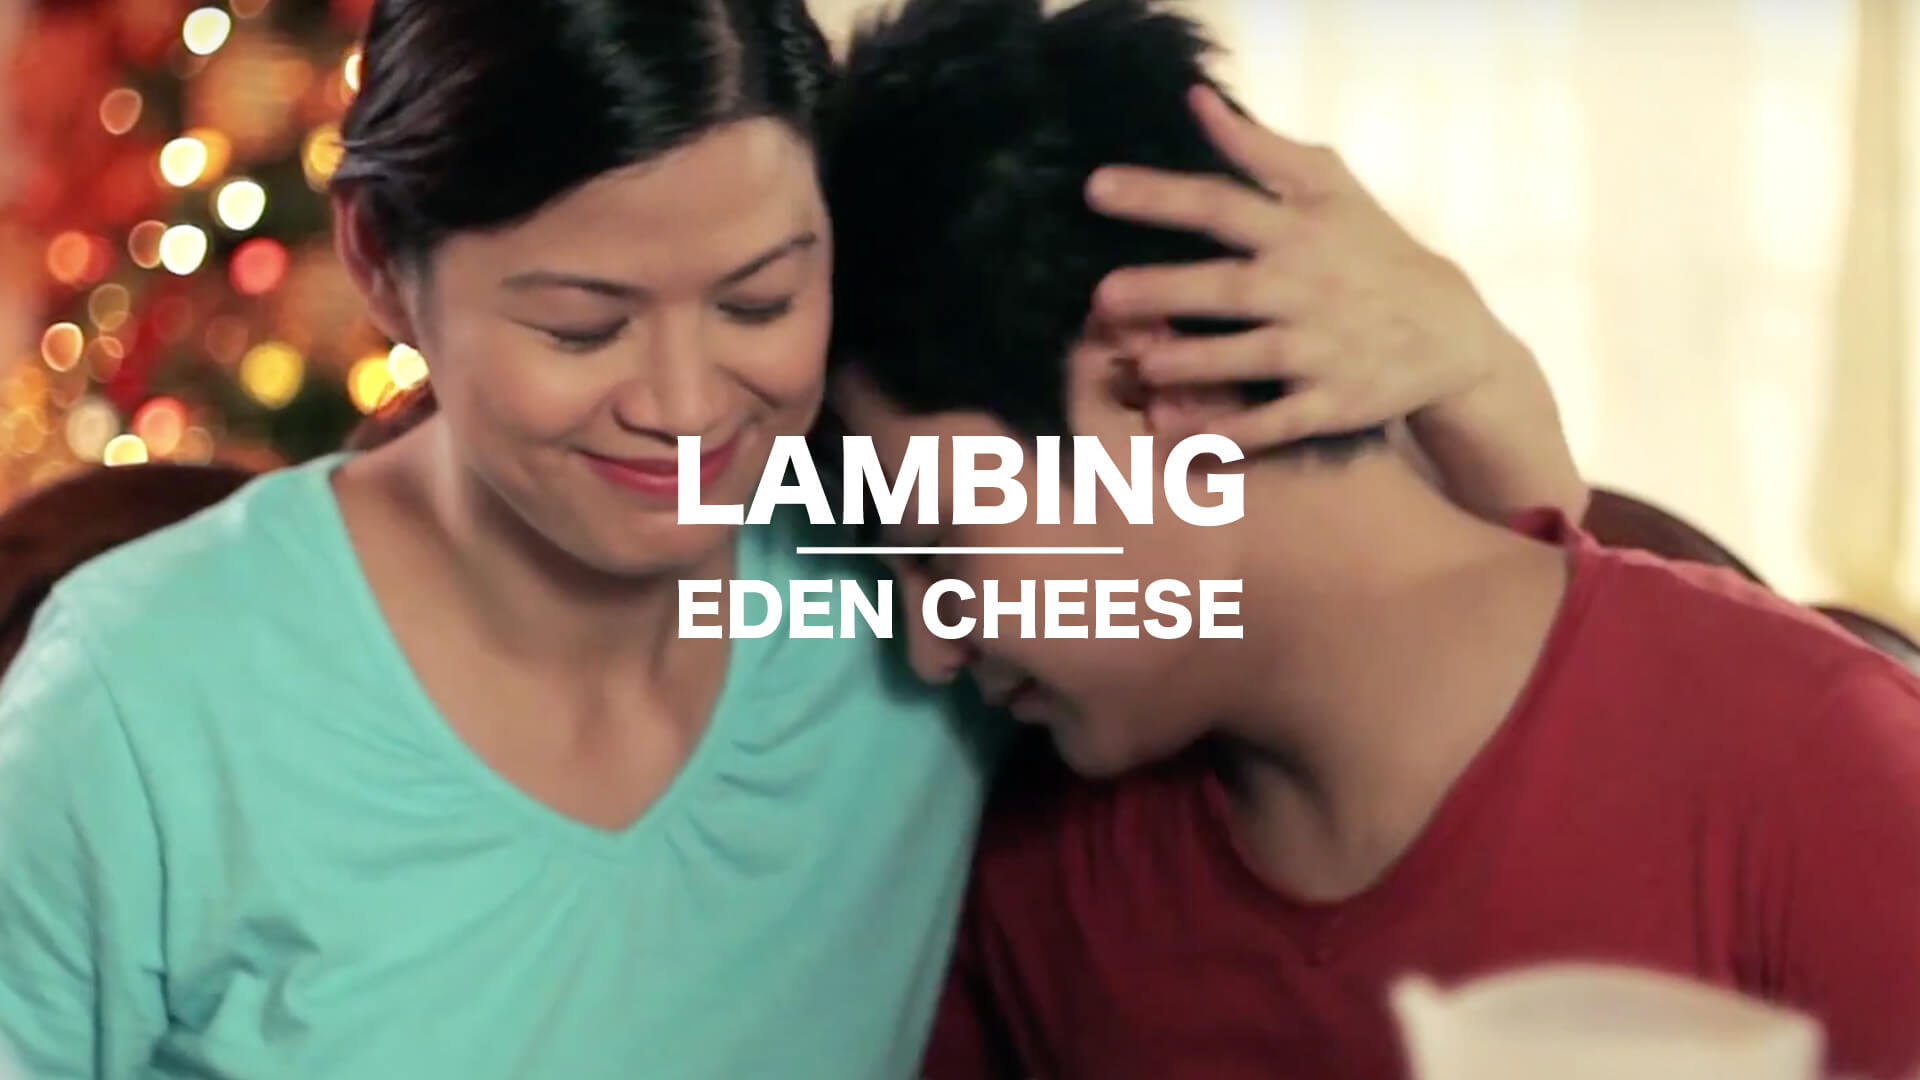 Project Lambing na Damang Dama Eden Cheese